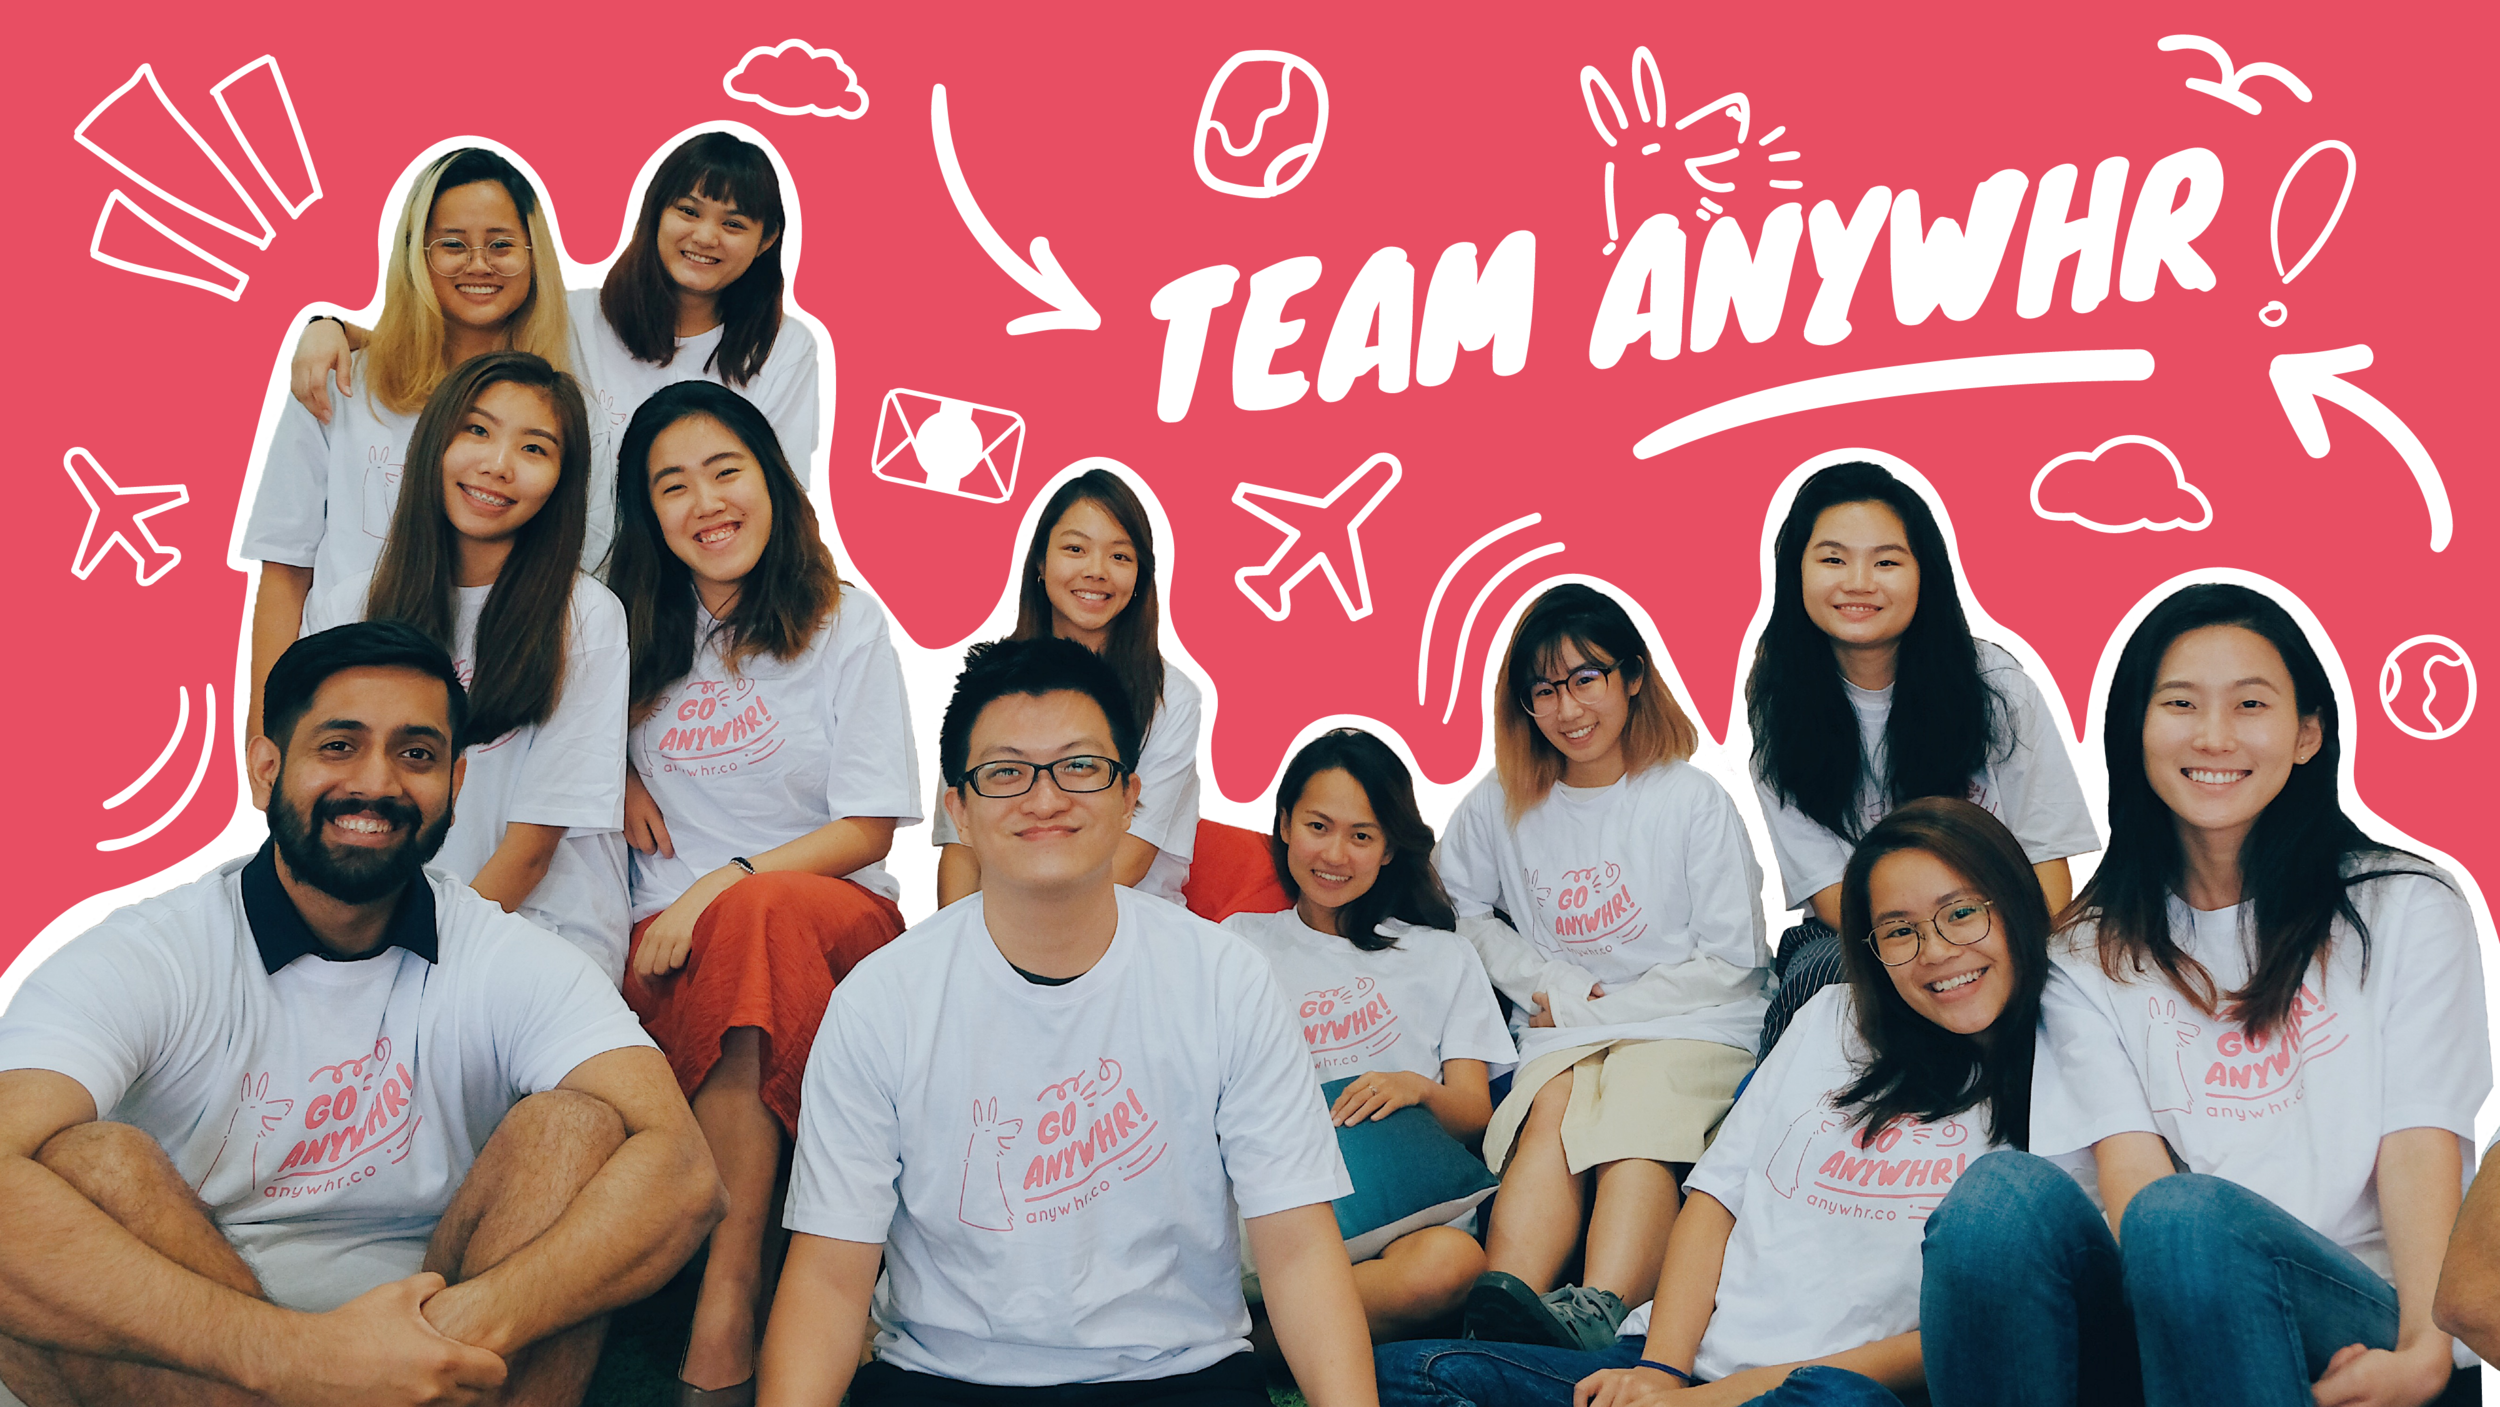 Anywhr team company group photo careers work with us